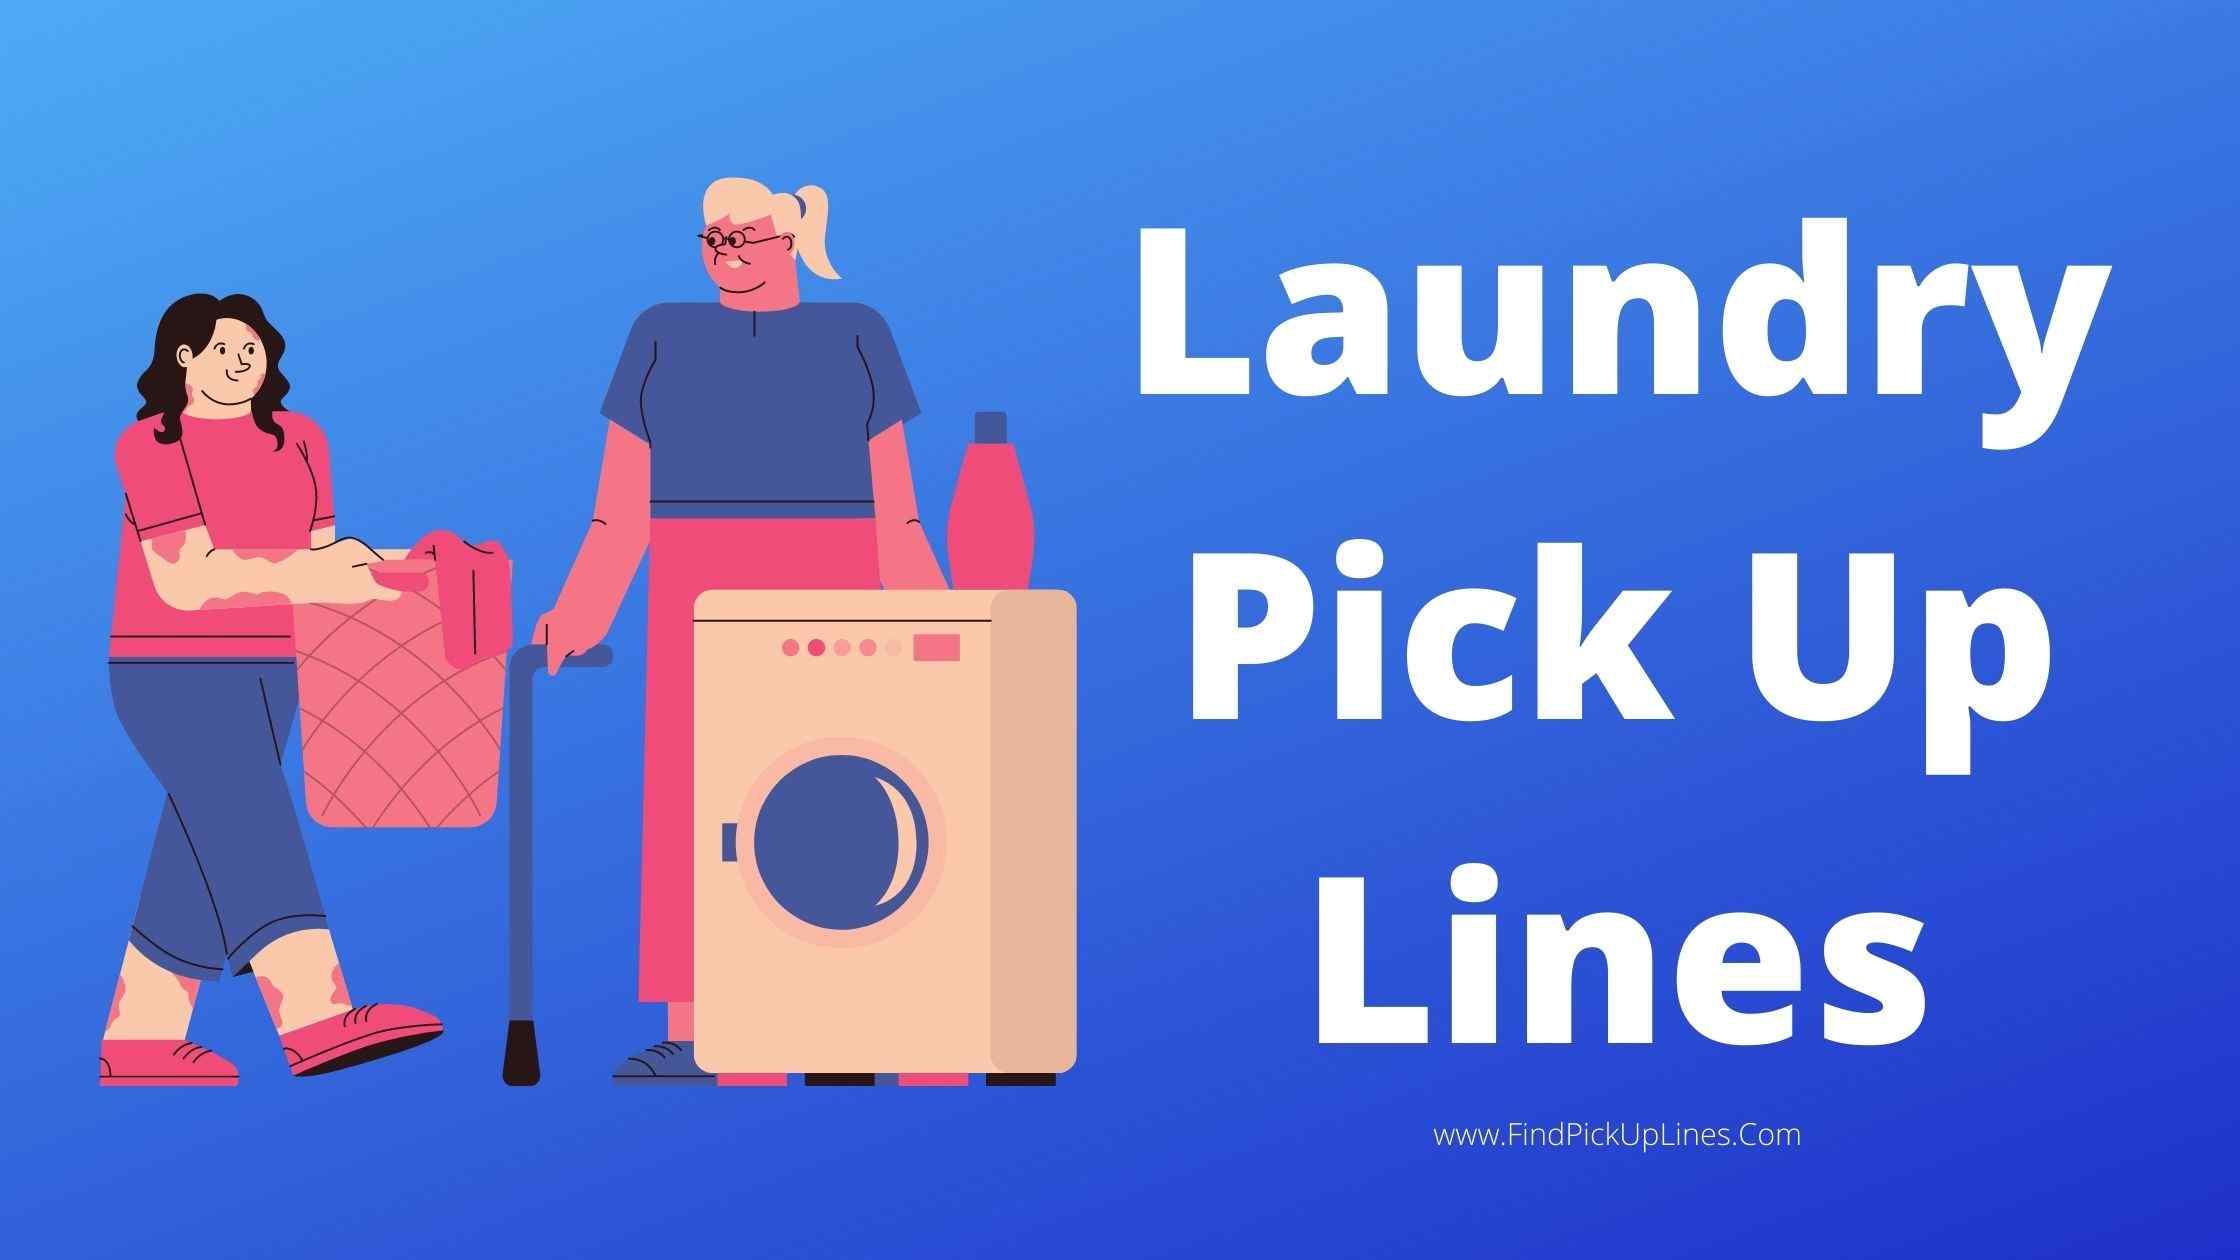 Laundry Pick Up Lines